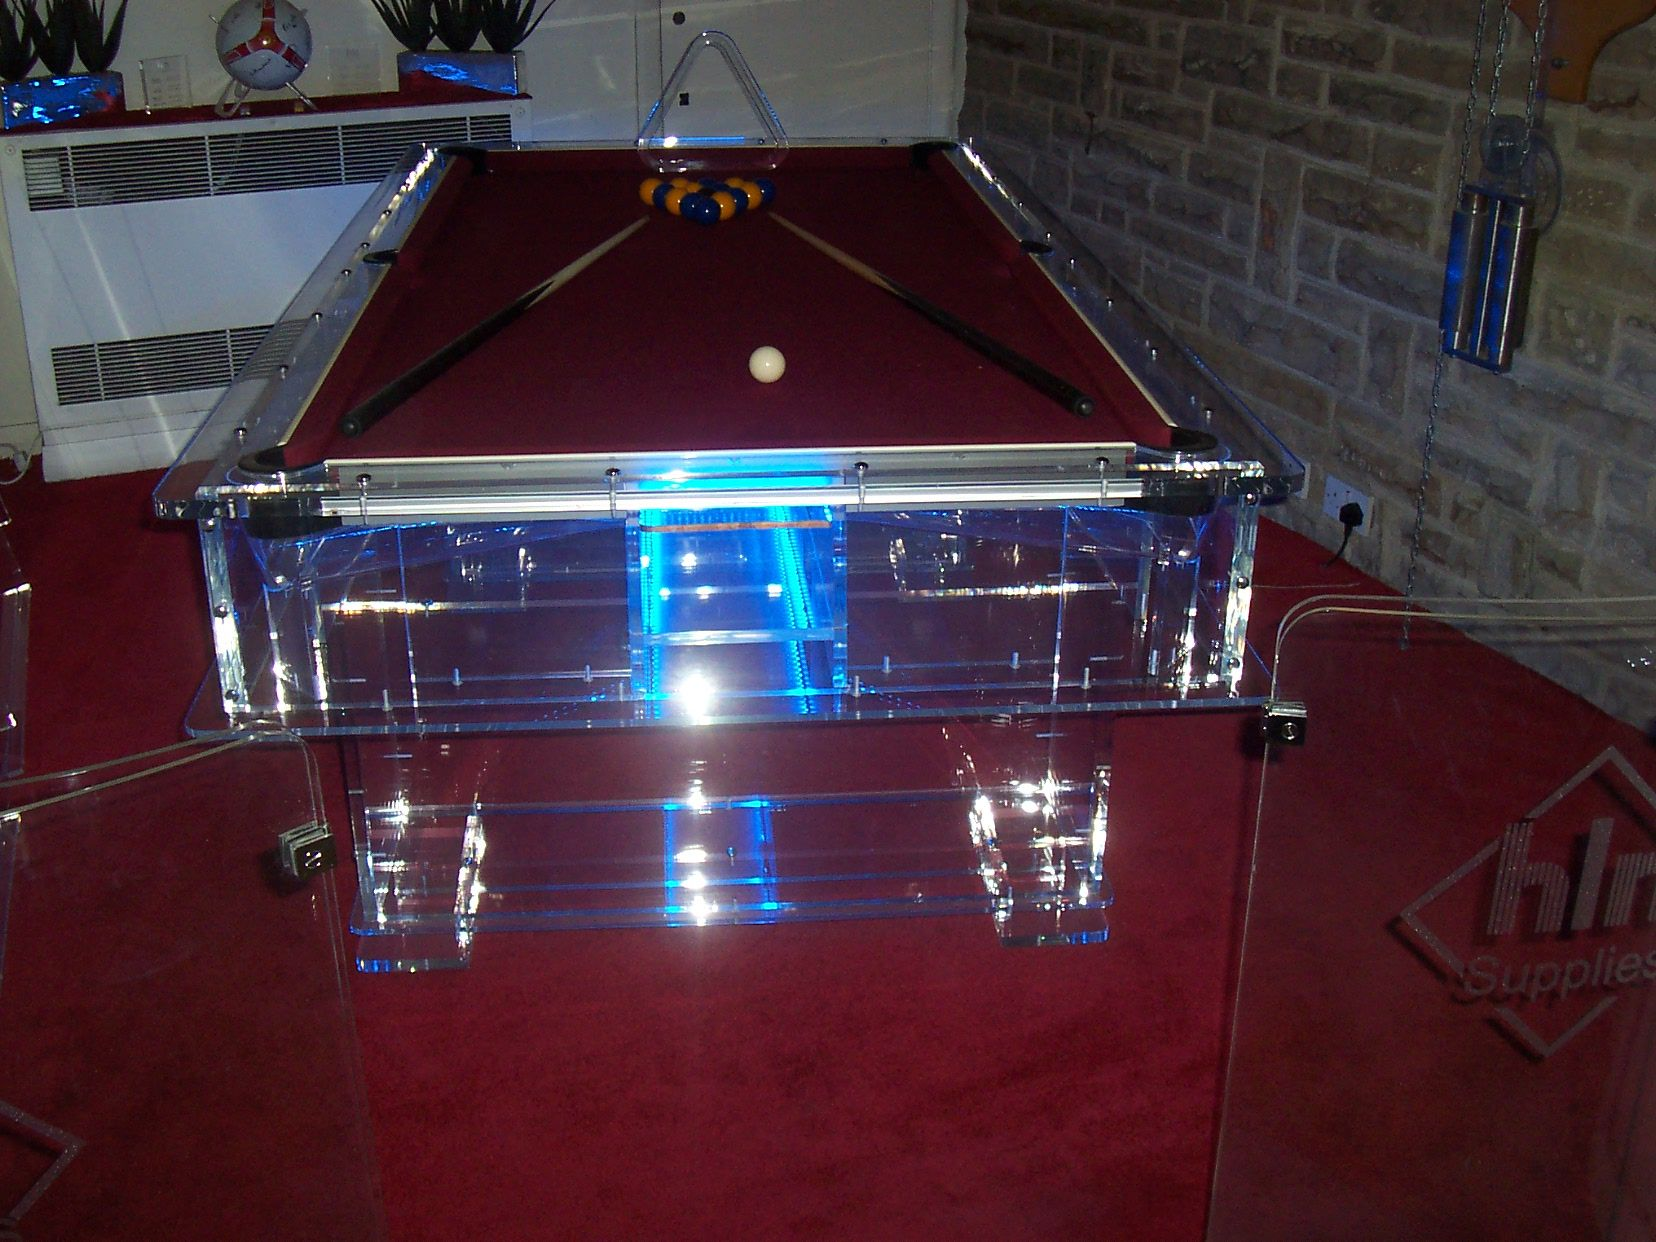 Acrylic Clear Pool Table Ideas For House Pinterest Pool Table - Clear pool table